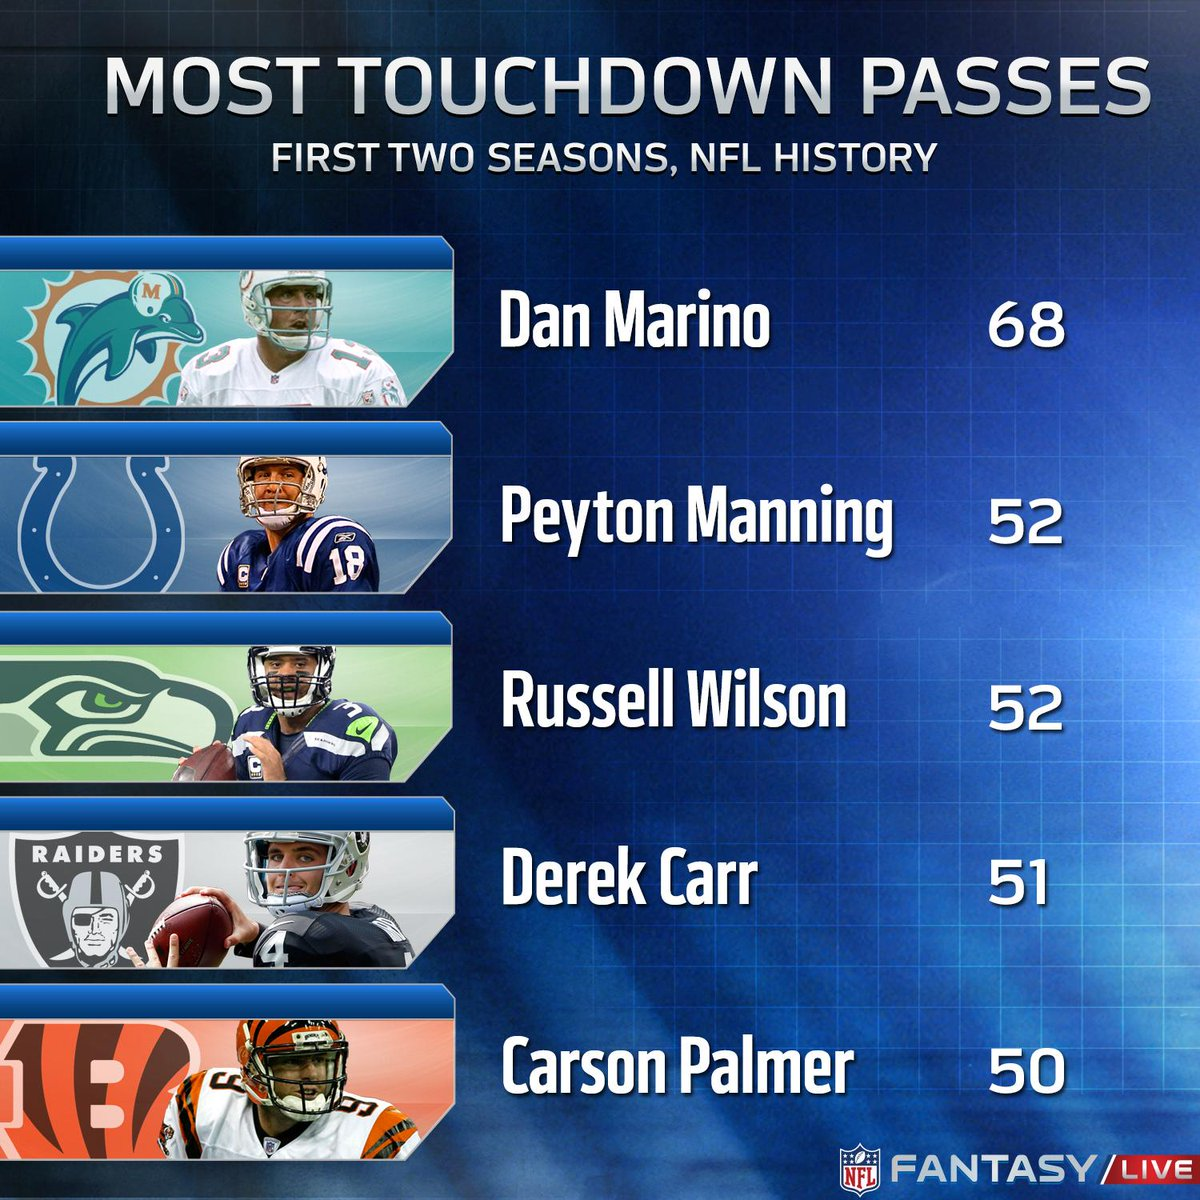 Will Carr jump to 2nd place on the most TD passes in the 1st two seasons list? NFL Fantasy LIVE next on @nflnetwork. https://t.co/i7bkucSvmk